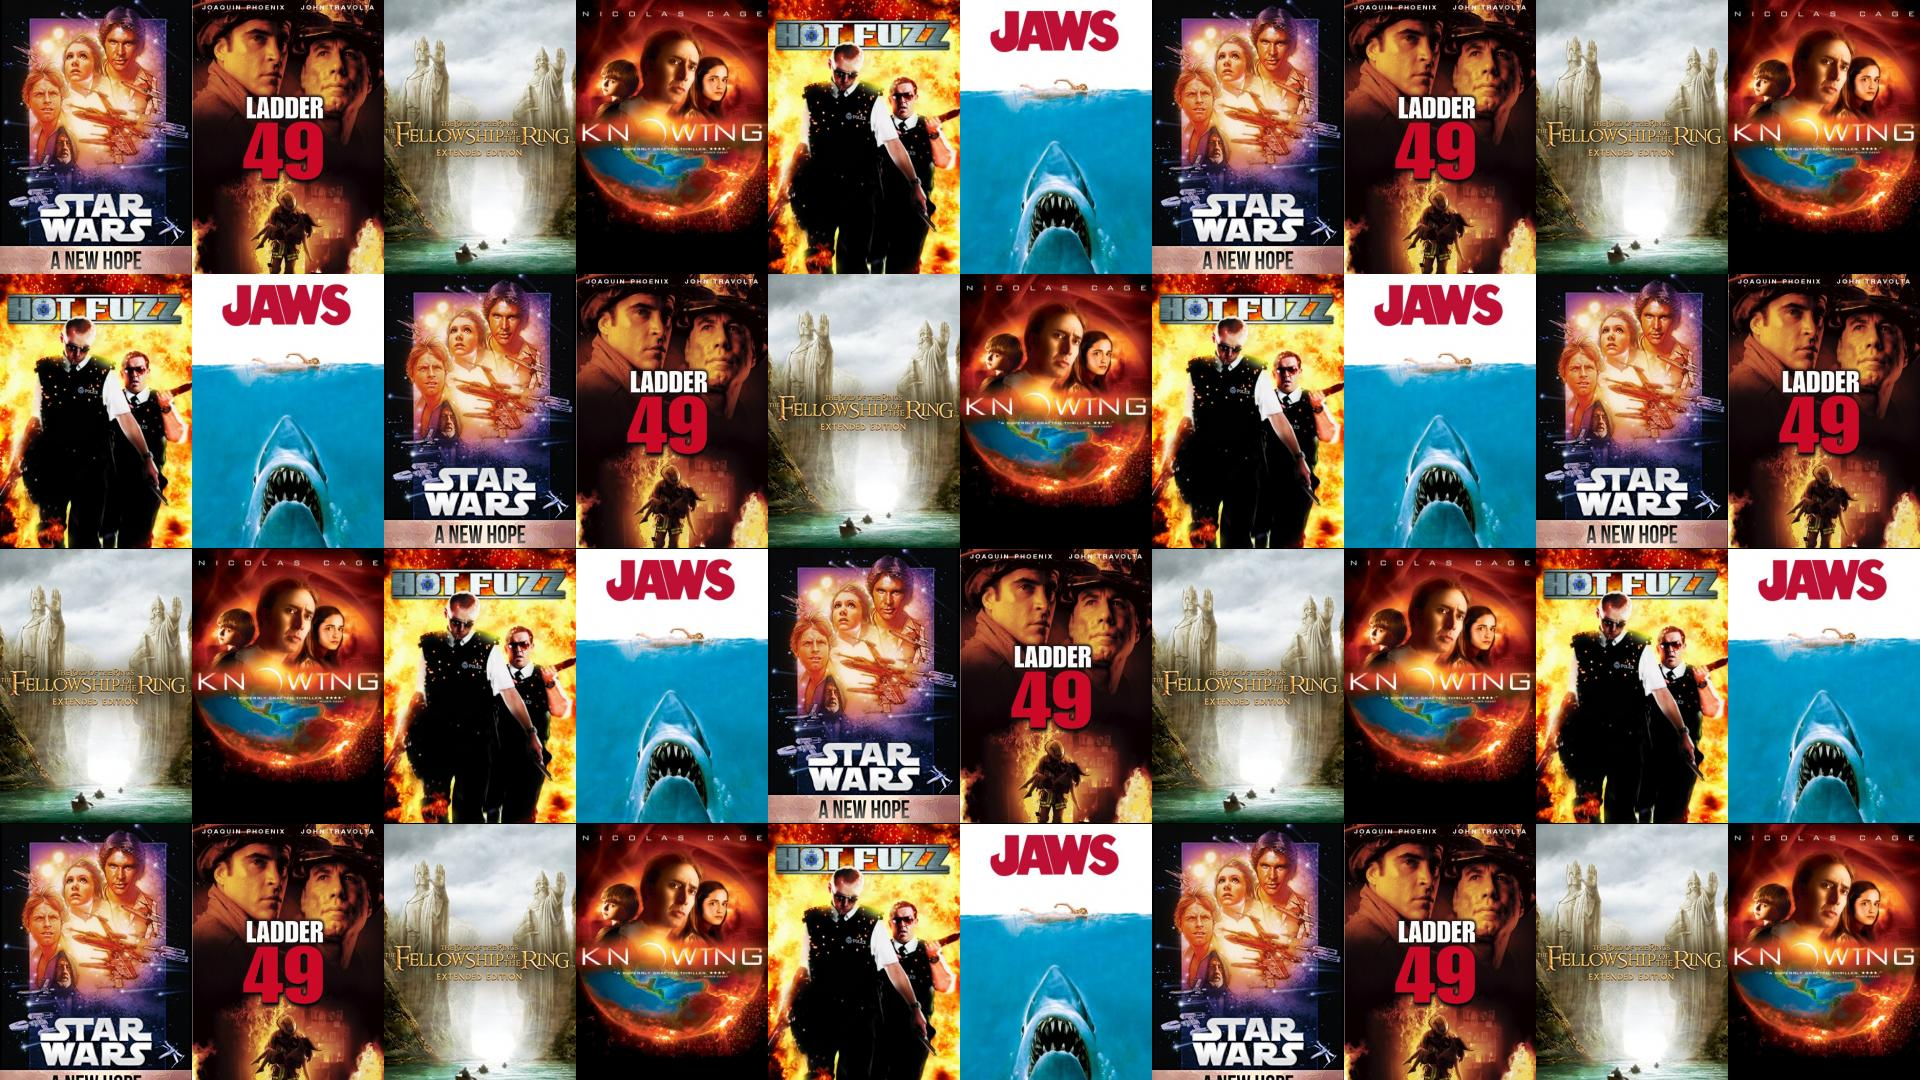 Star Wars Ladder 49 Lord Rings Knowing Hot Wallpaper Tiled